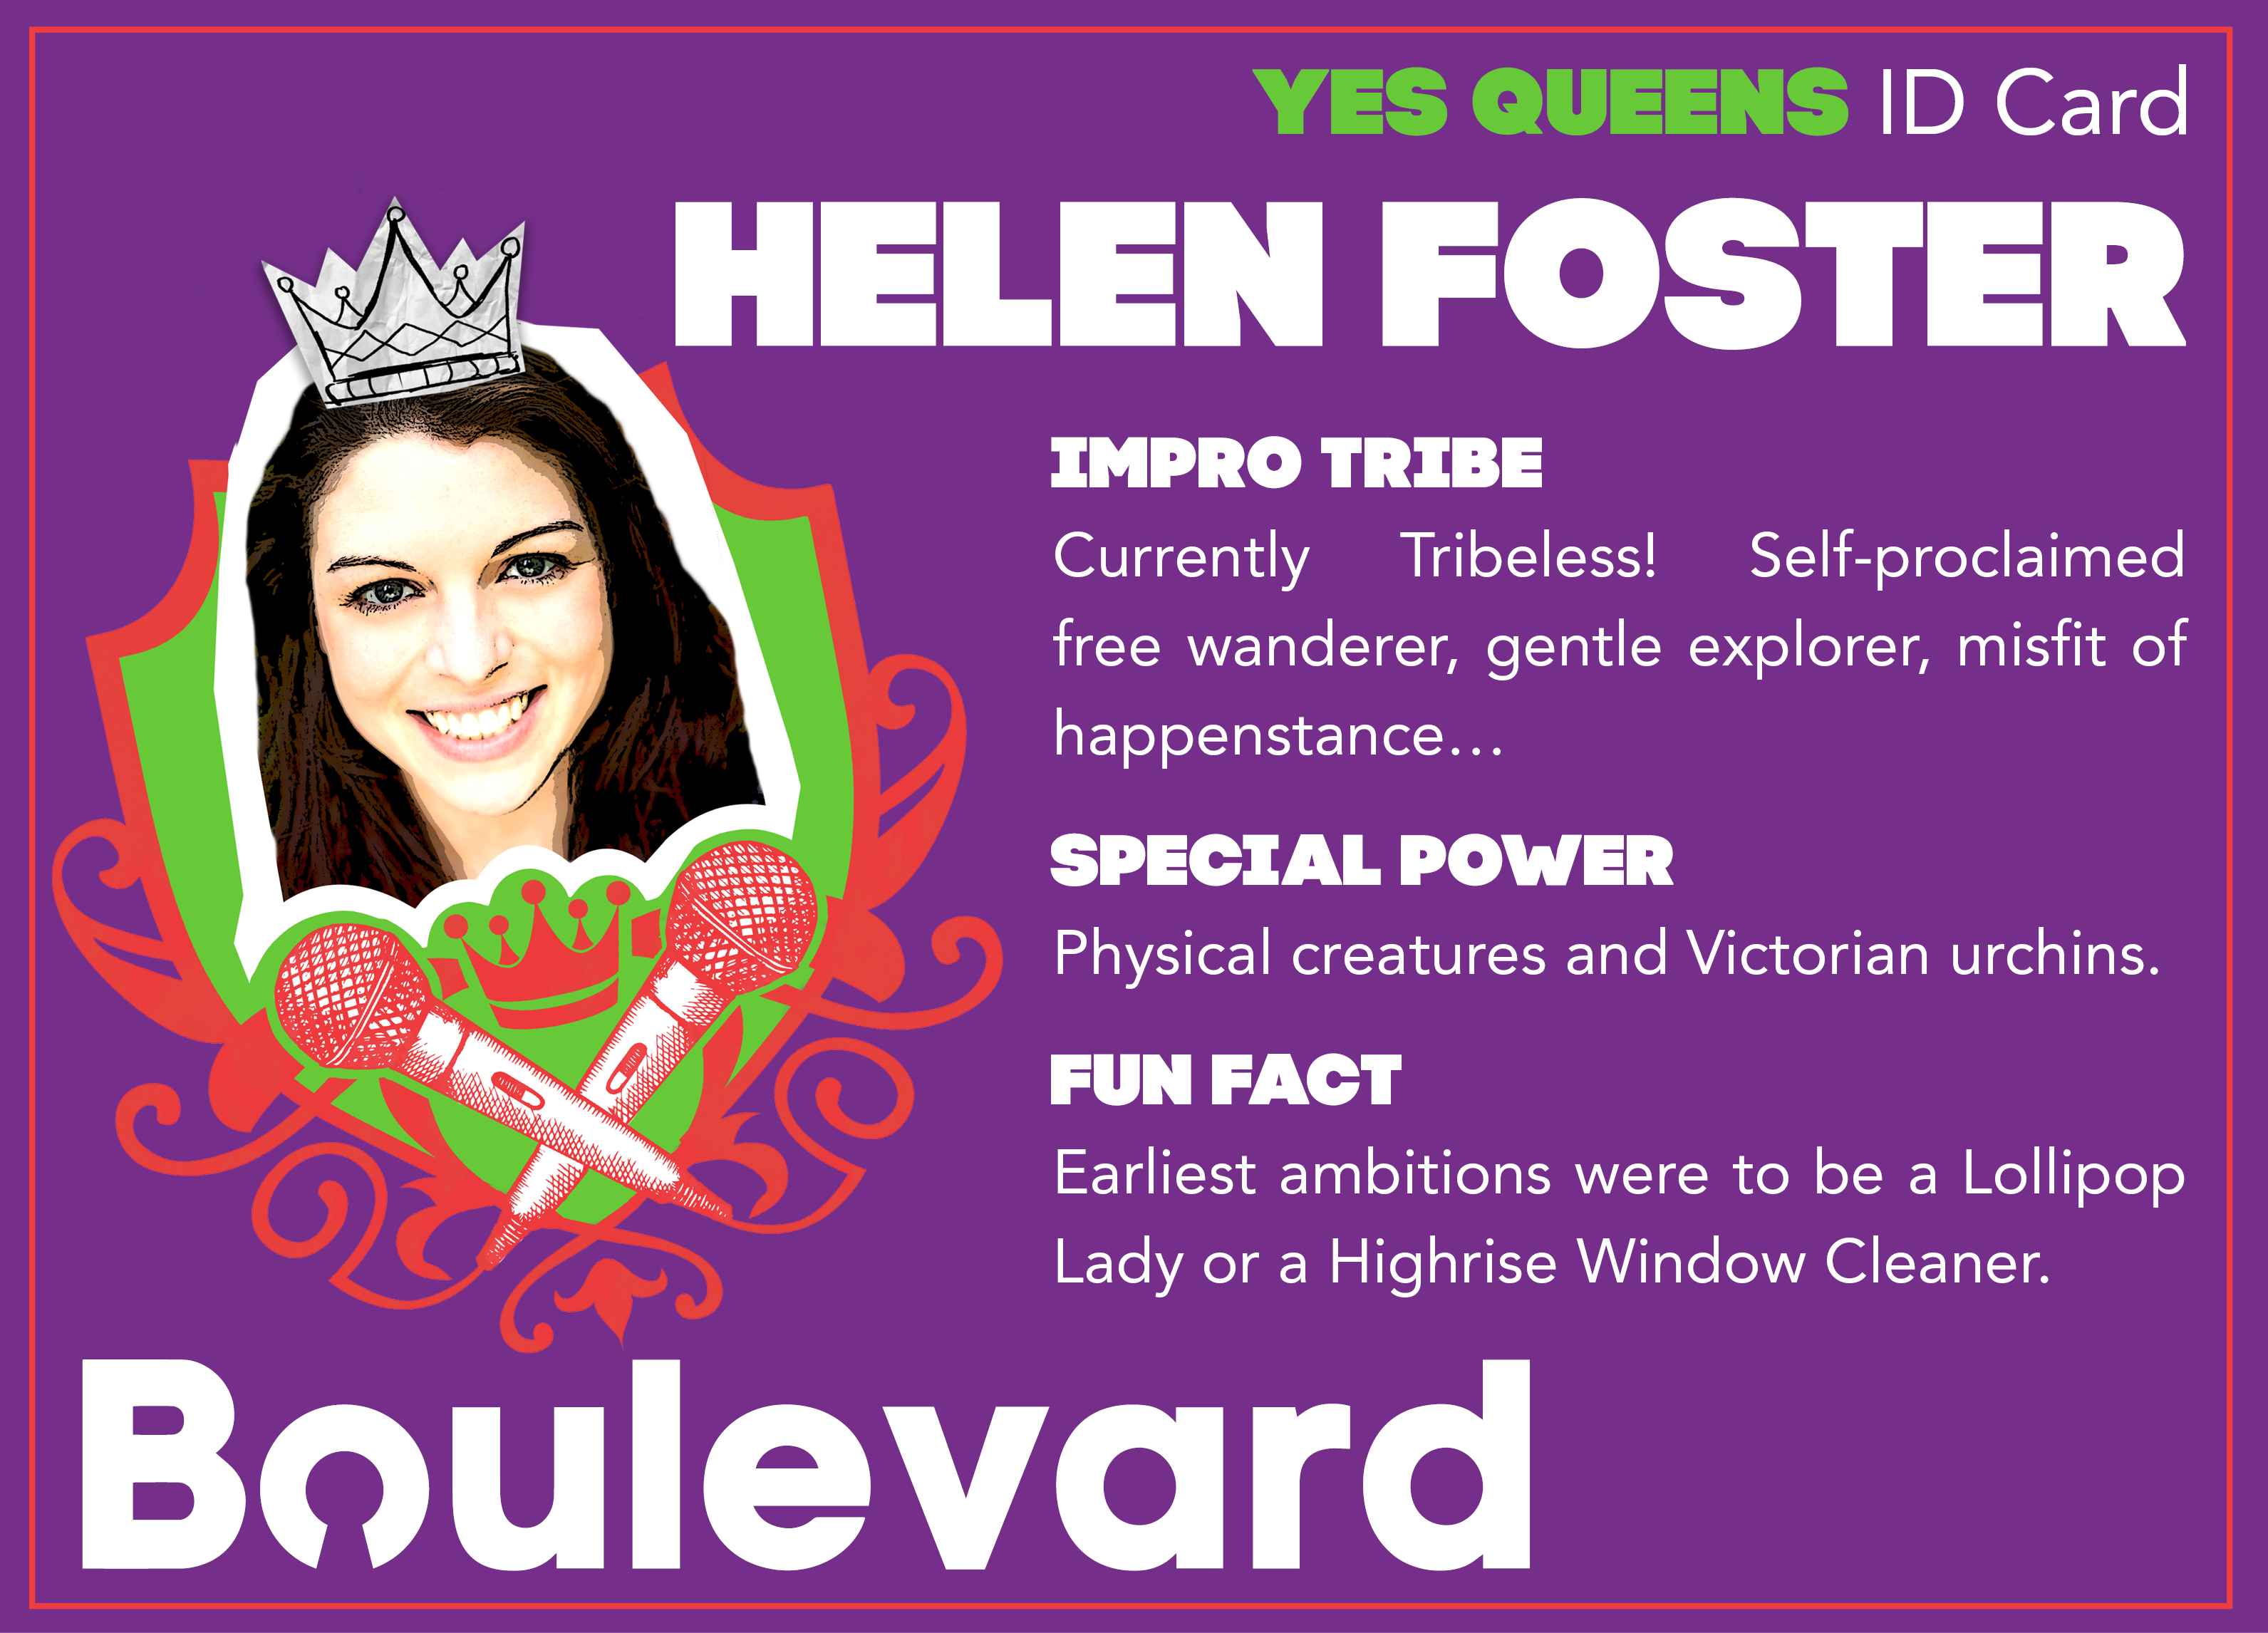 Yes Queens ID Card Helen